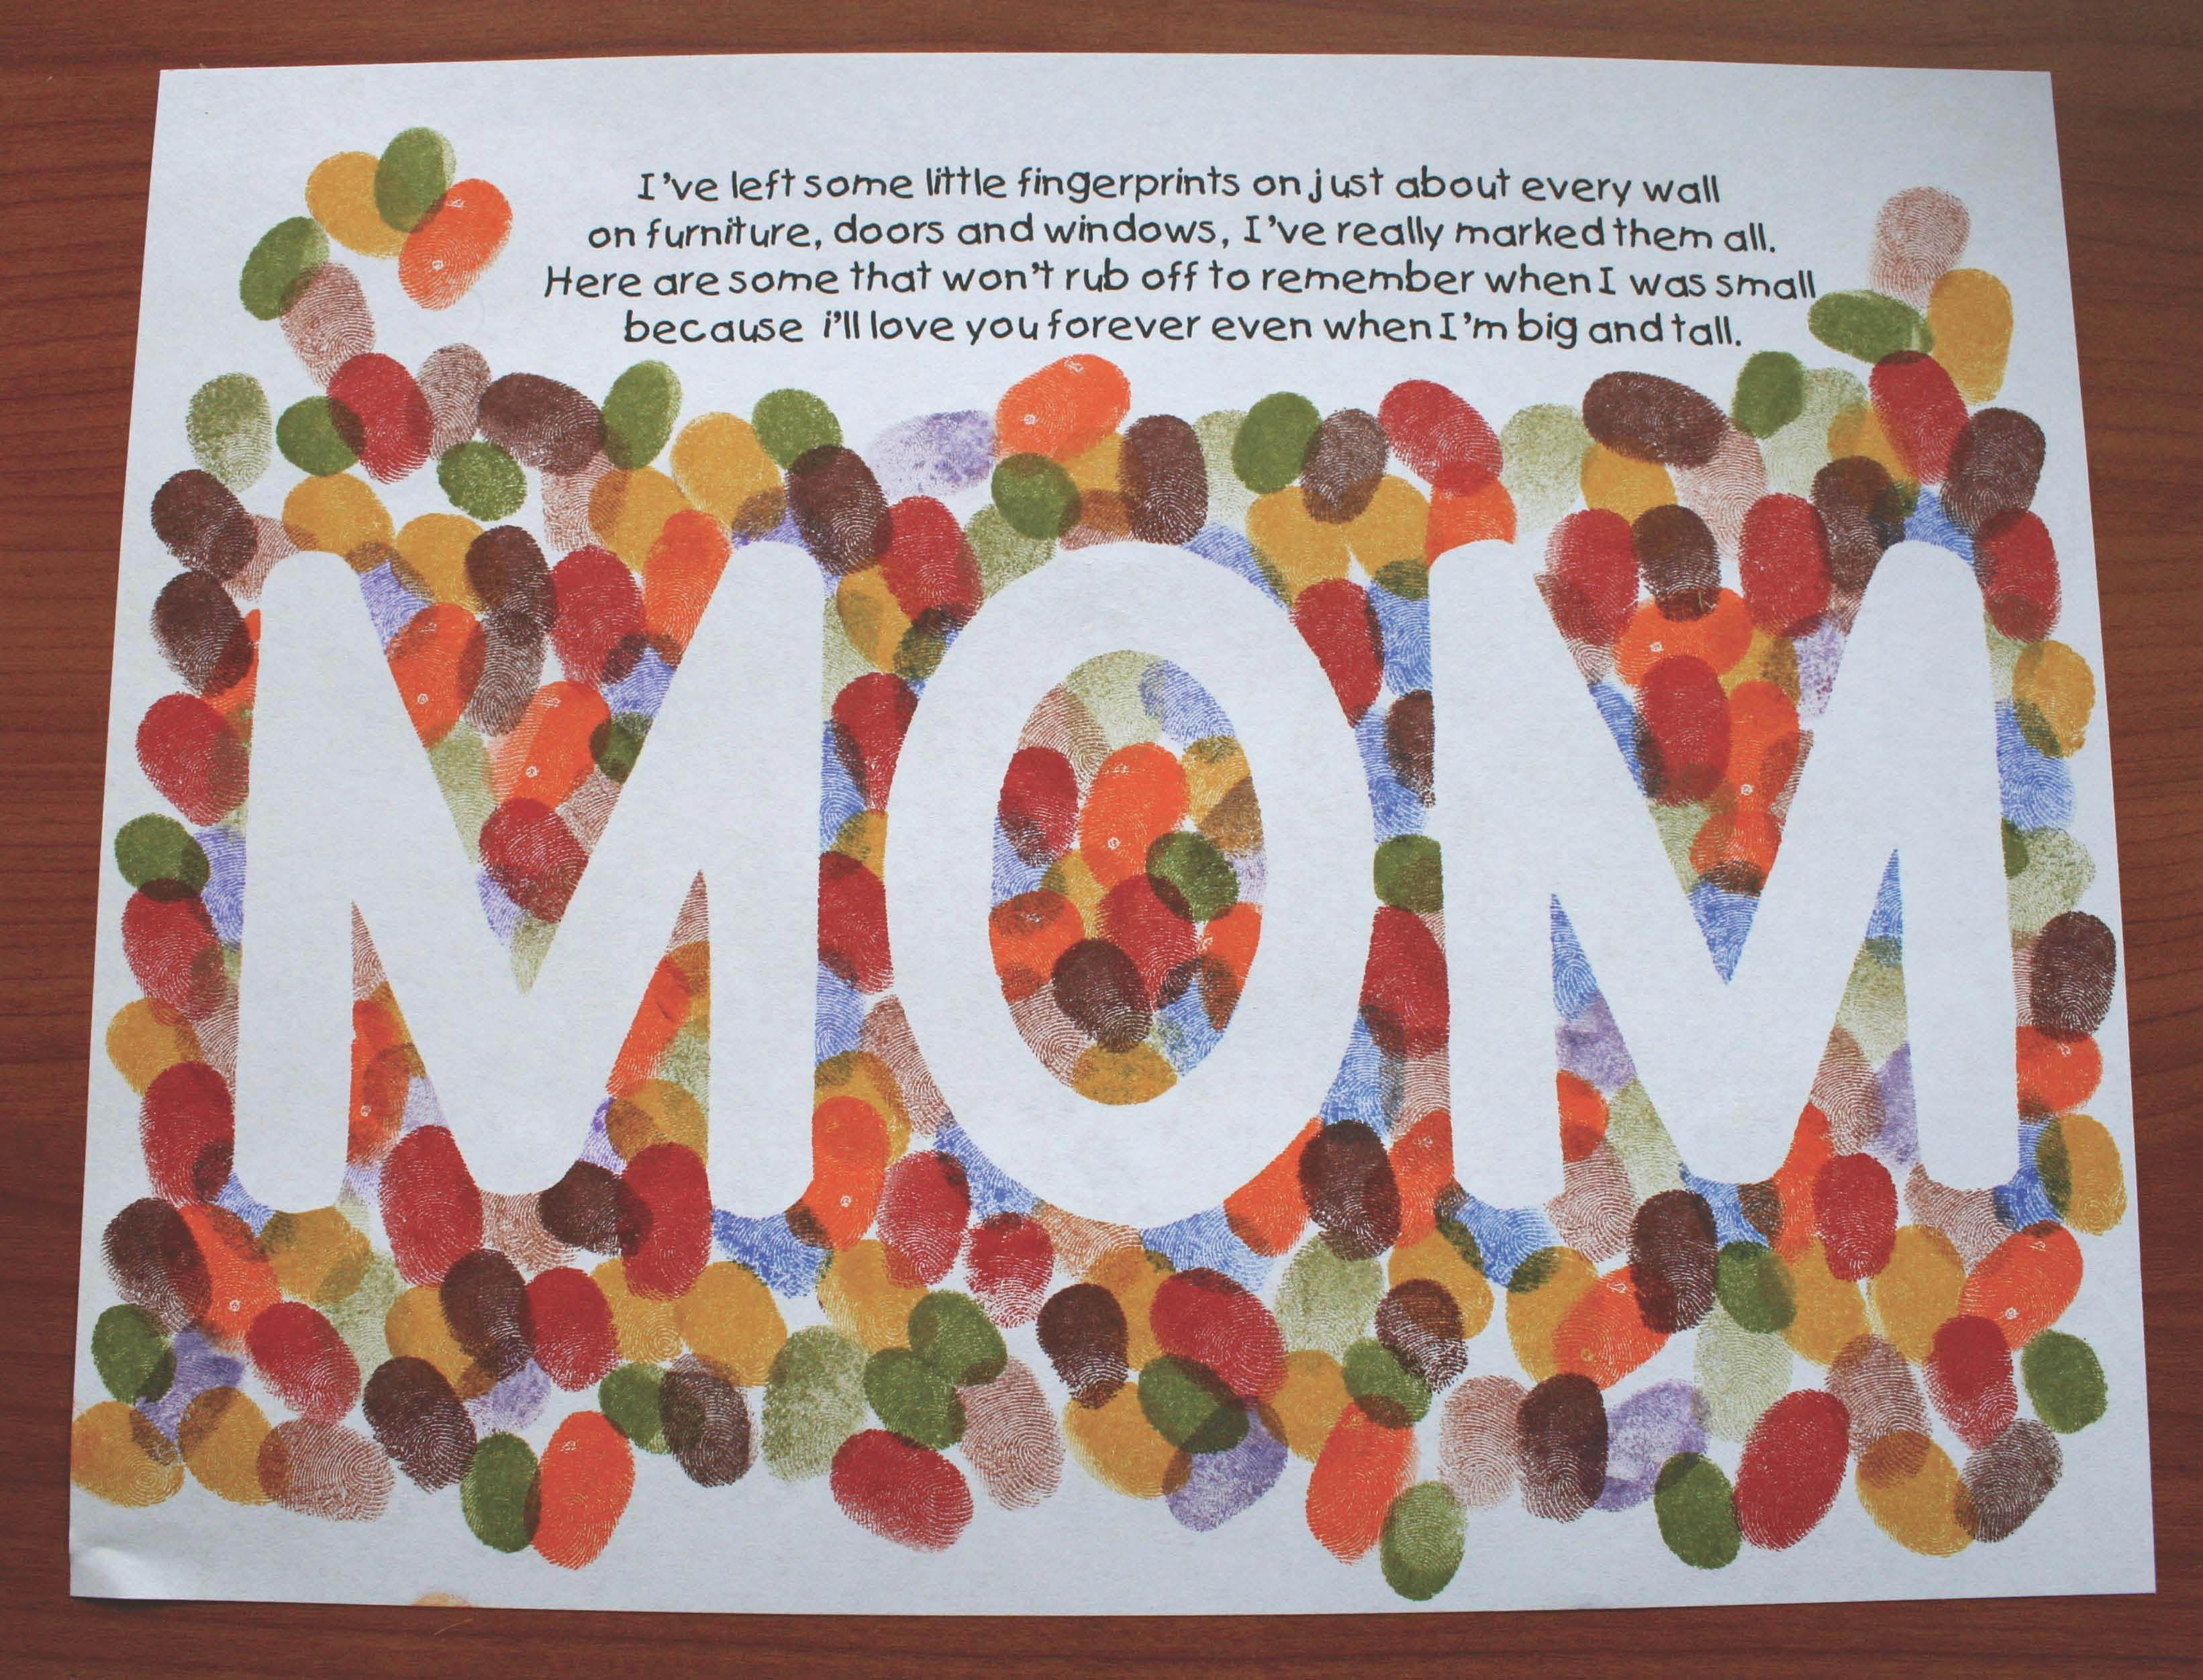 fingerprint art, mothers day crafts, mothers day gifts, mothers day activities, writing prompts for mothers day, gifts and cards for mom that children can make, rainbow crafts, may writing prompts